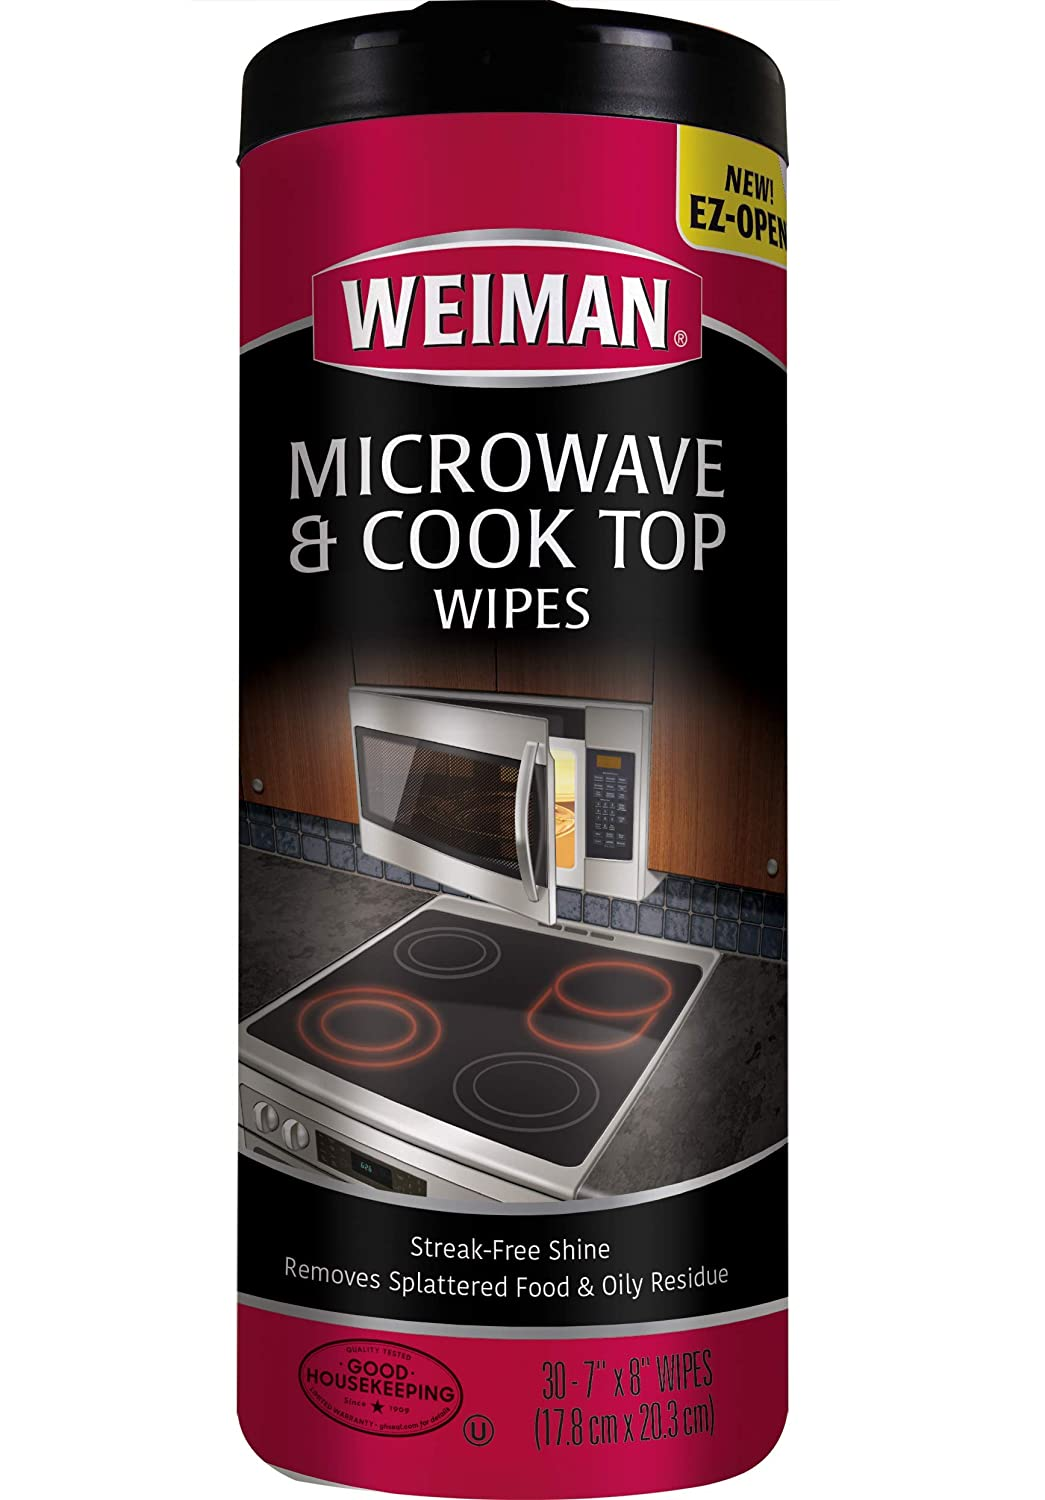 Weiman Microwave & Cook Top Wipes - 4 packs of 30 wipes